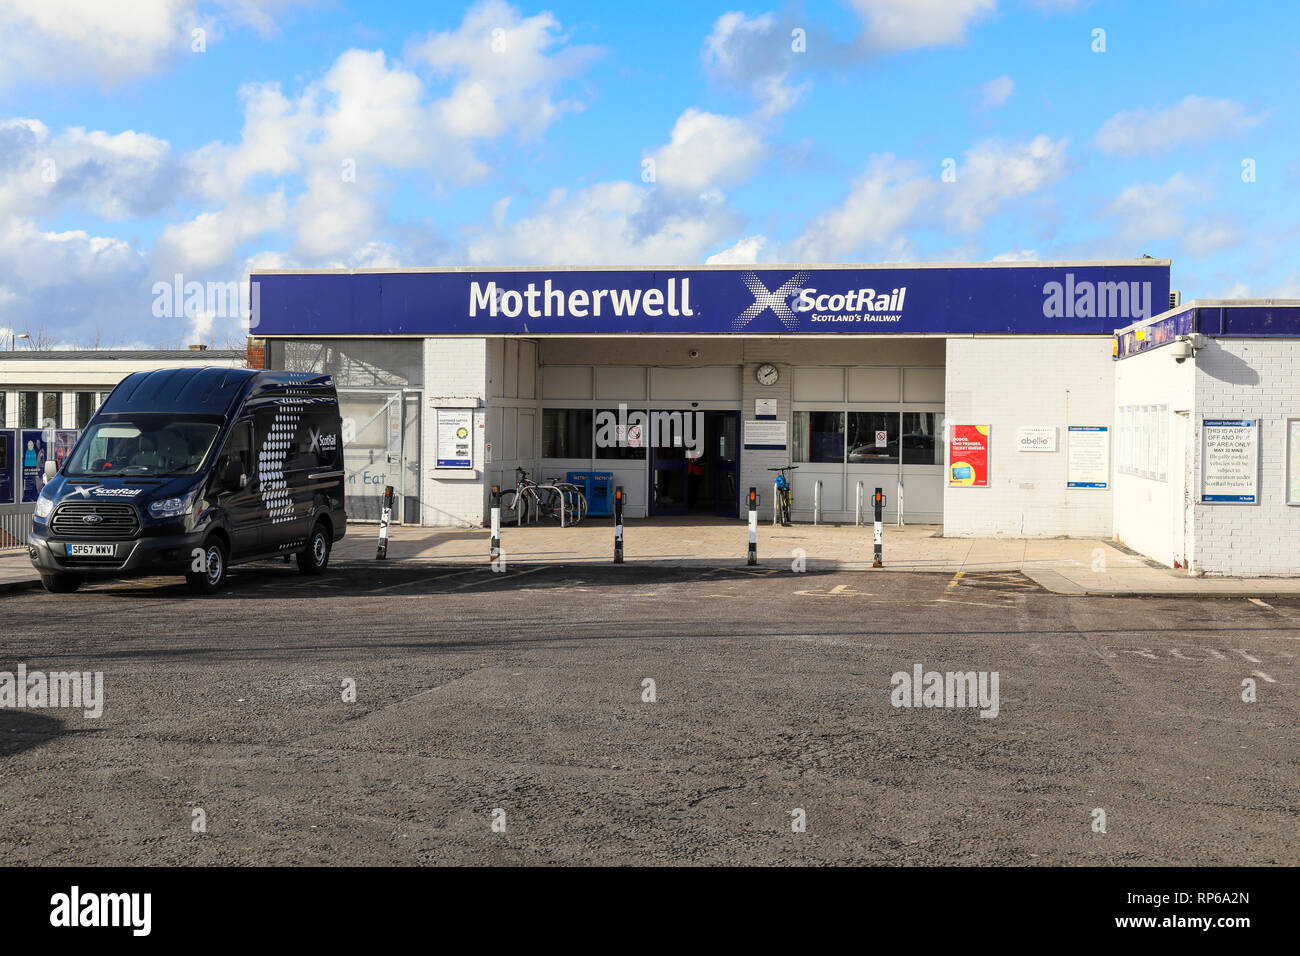 Motherwell railway station in North Lanarkshire with a Scotrail van in the car park - Stock Image